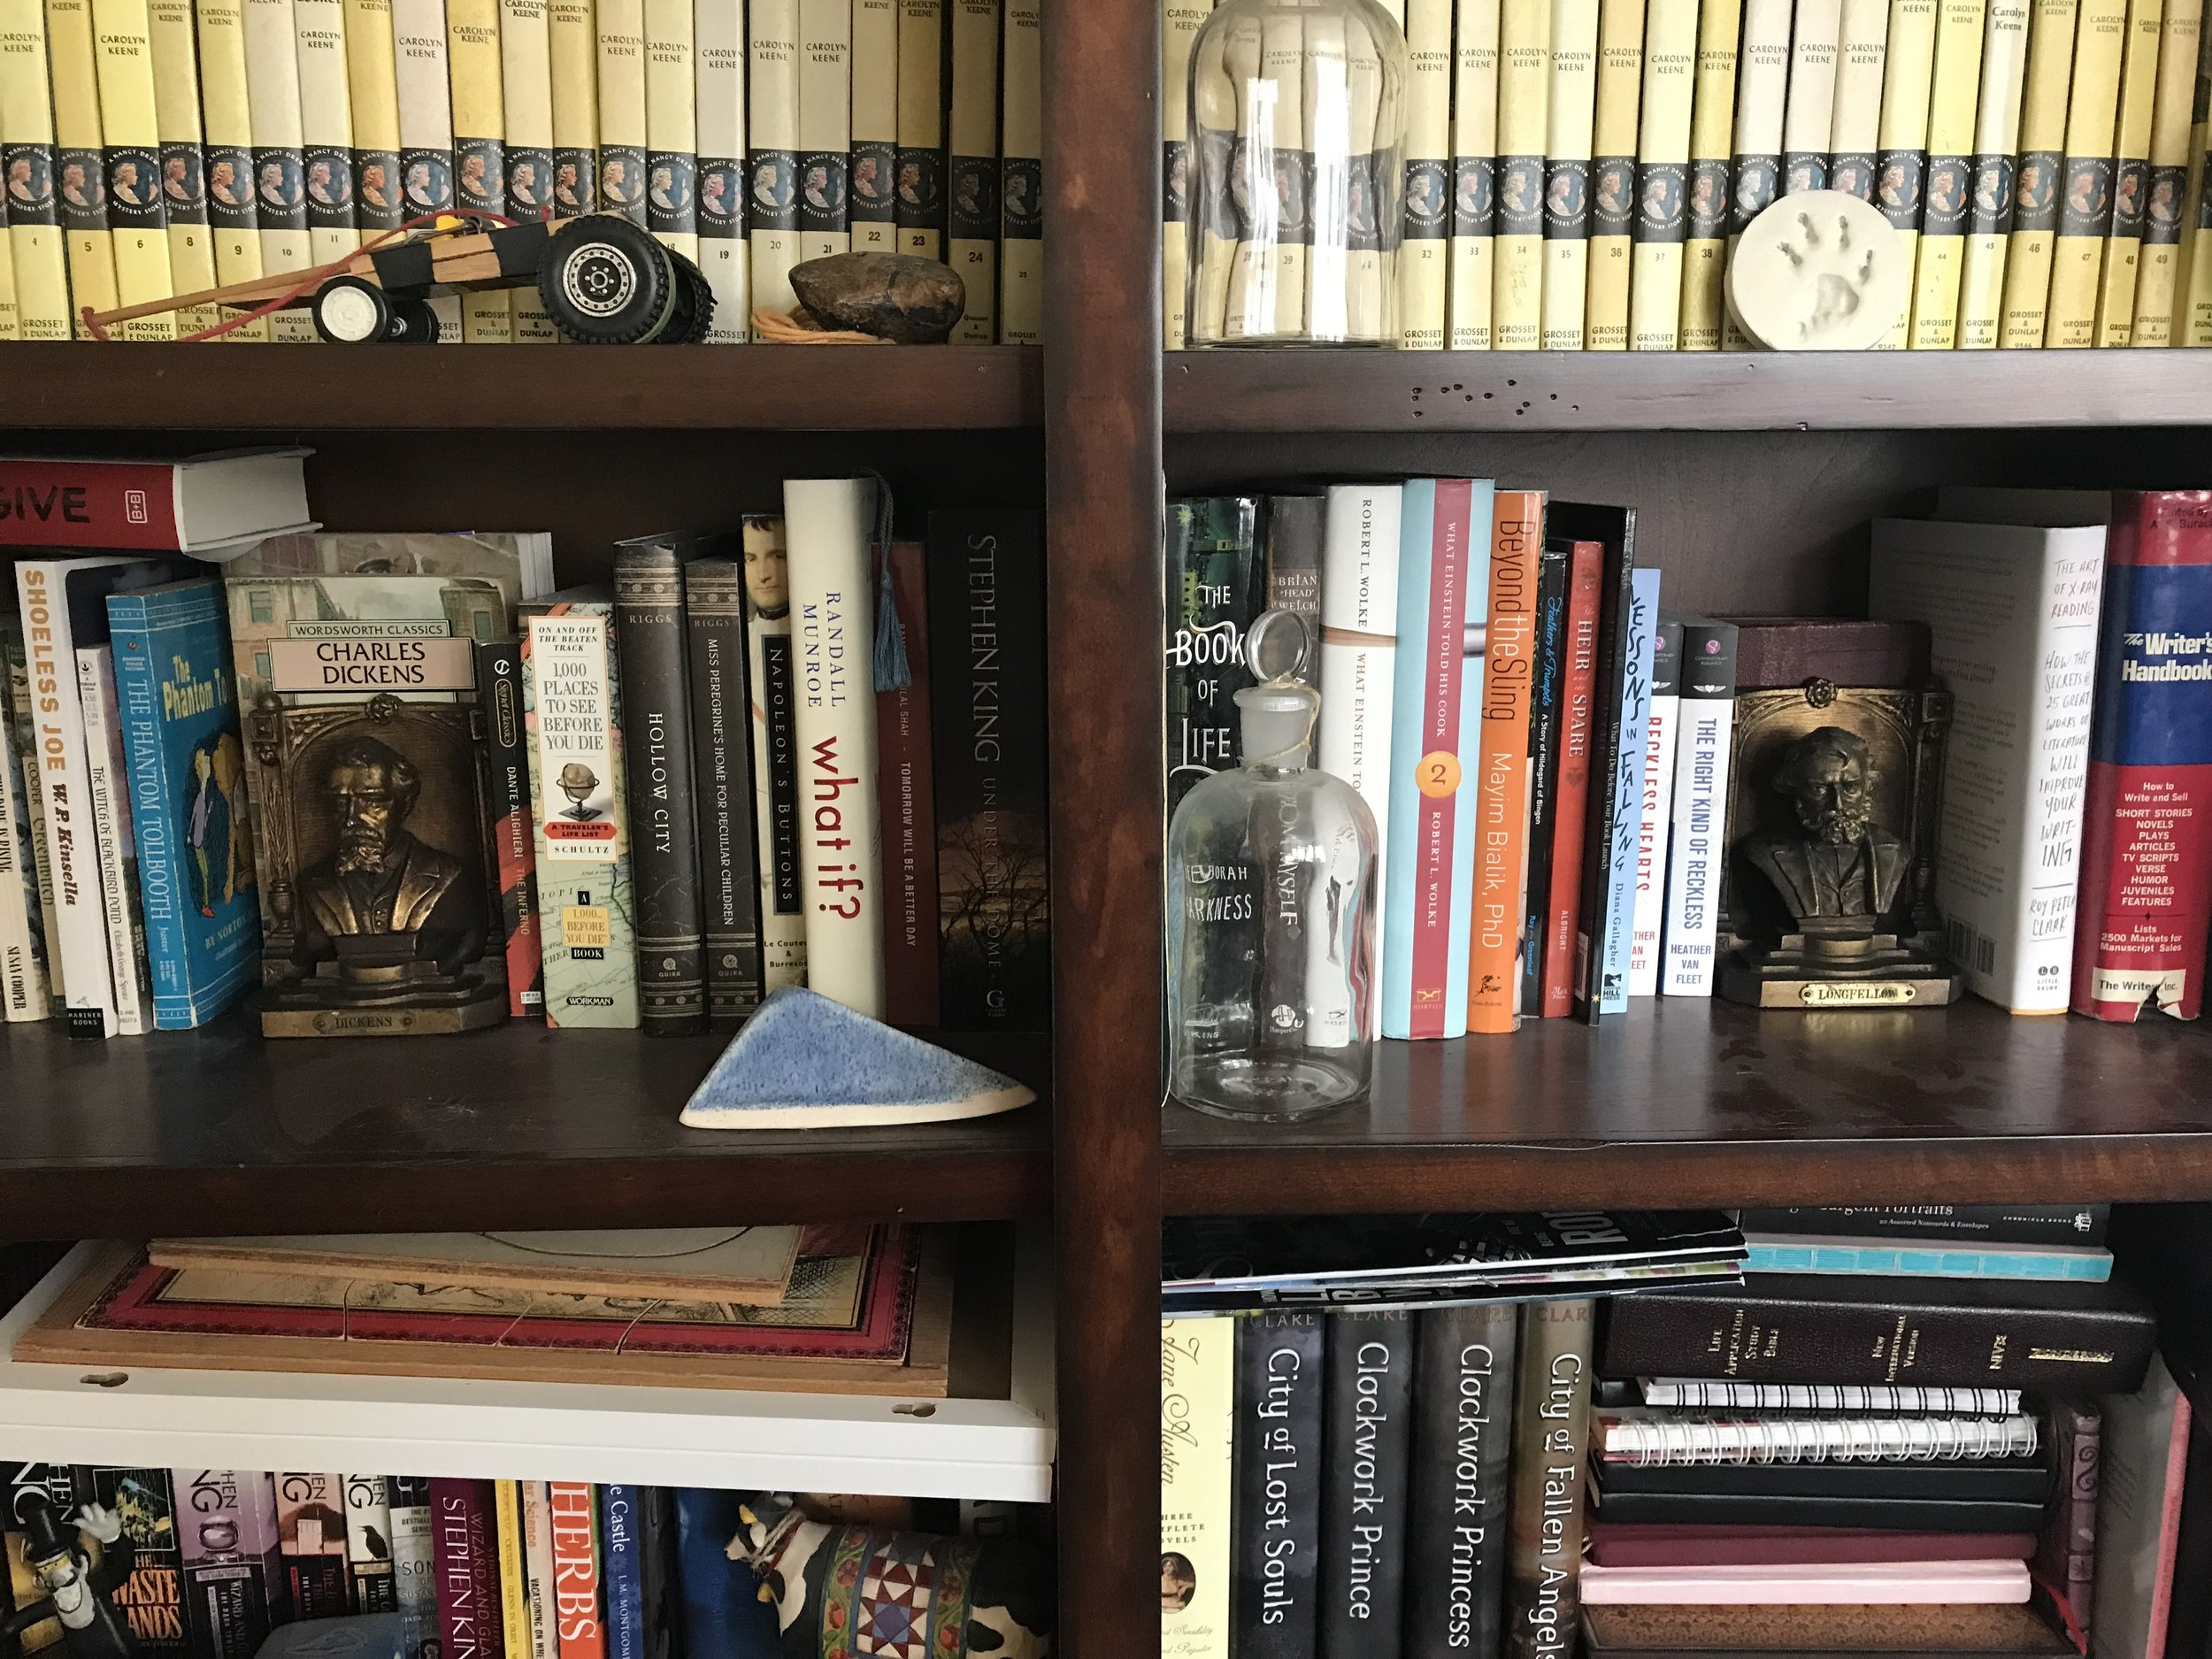 Some of my cluttered, crowded shelves.